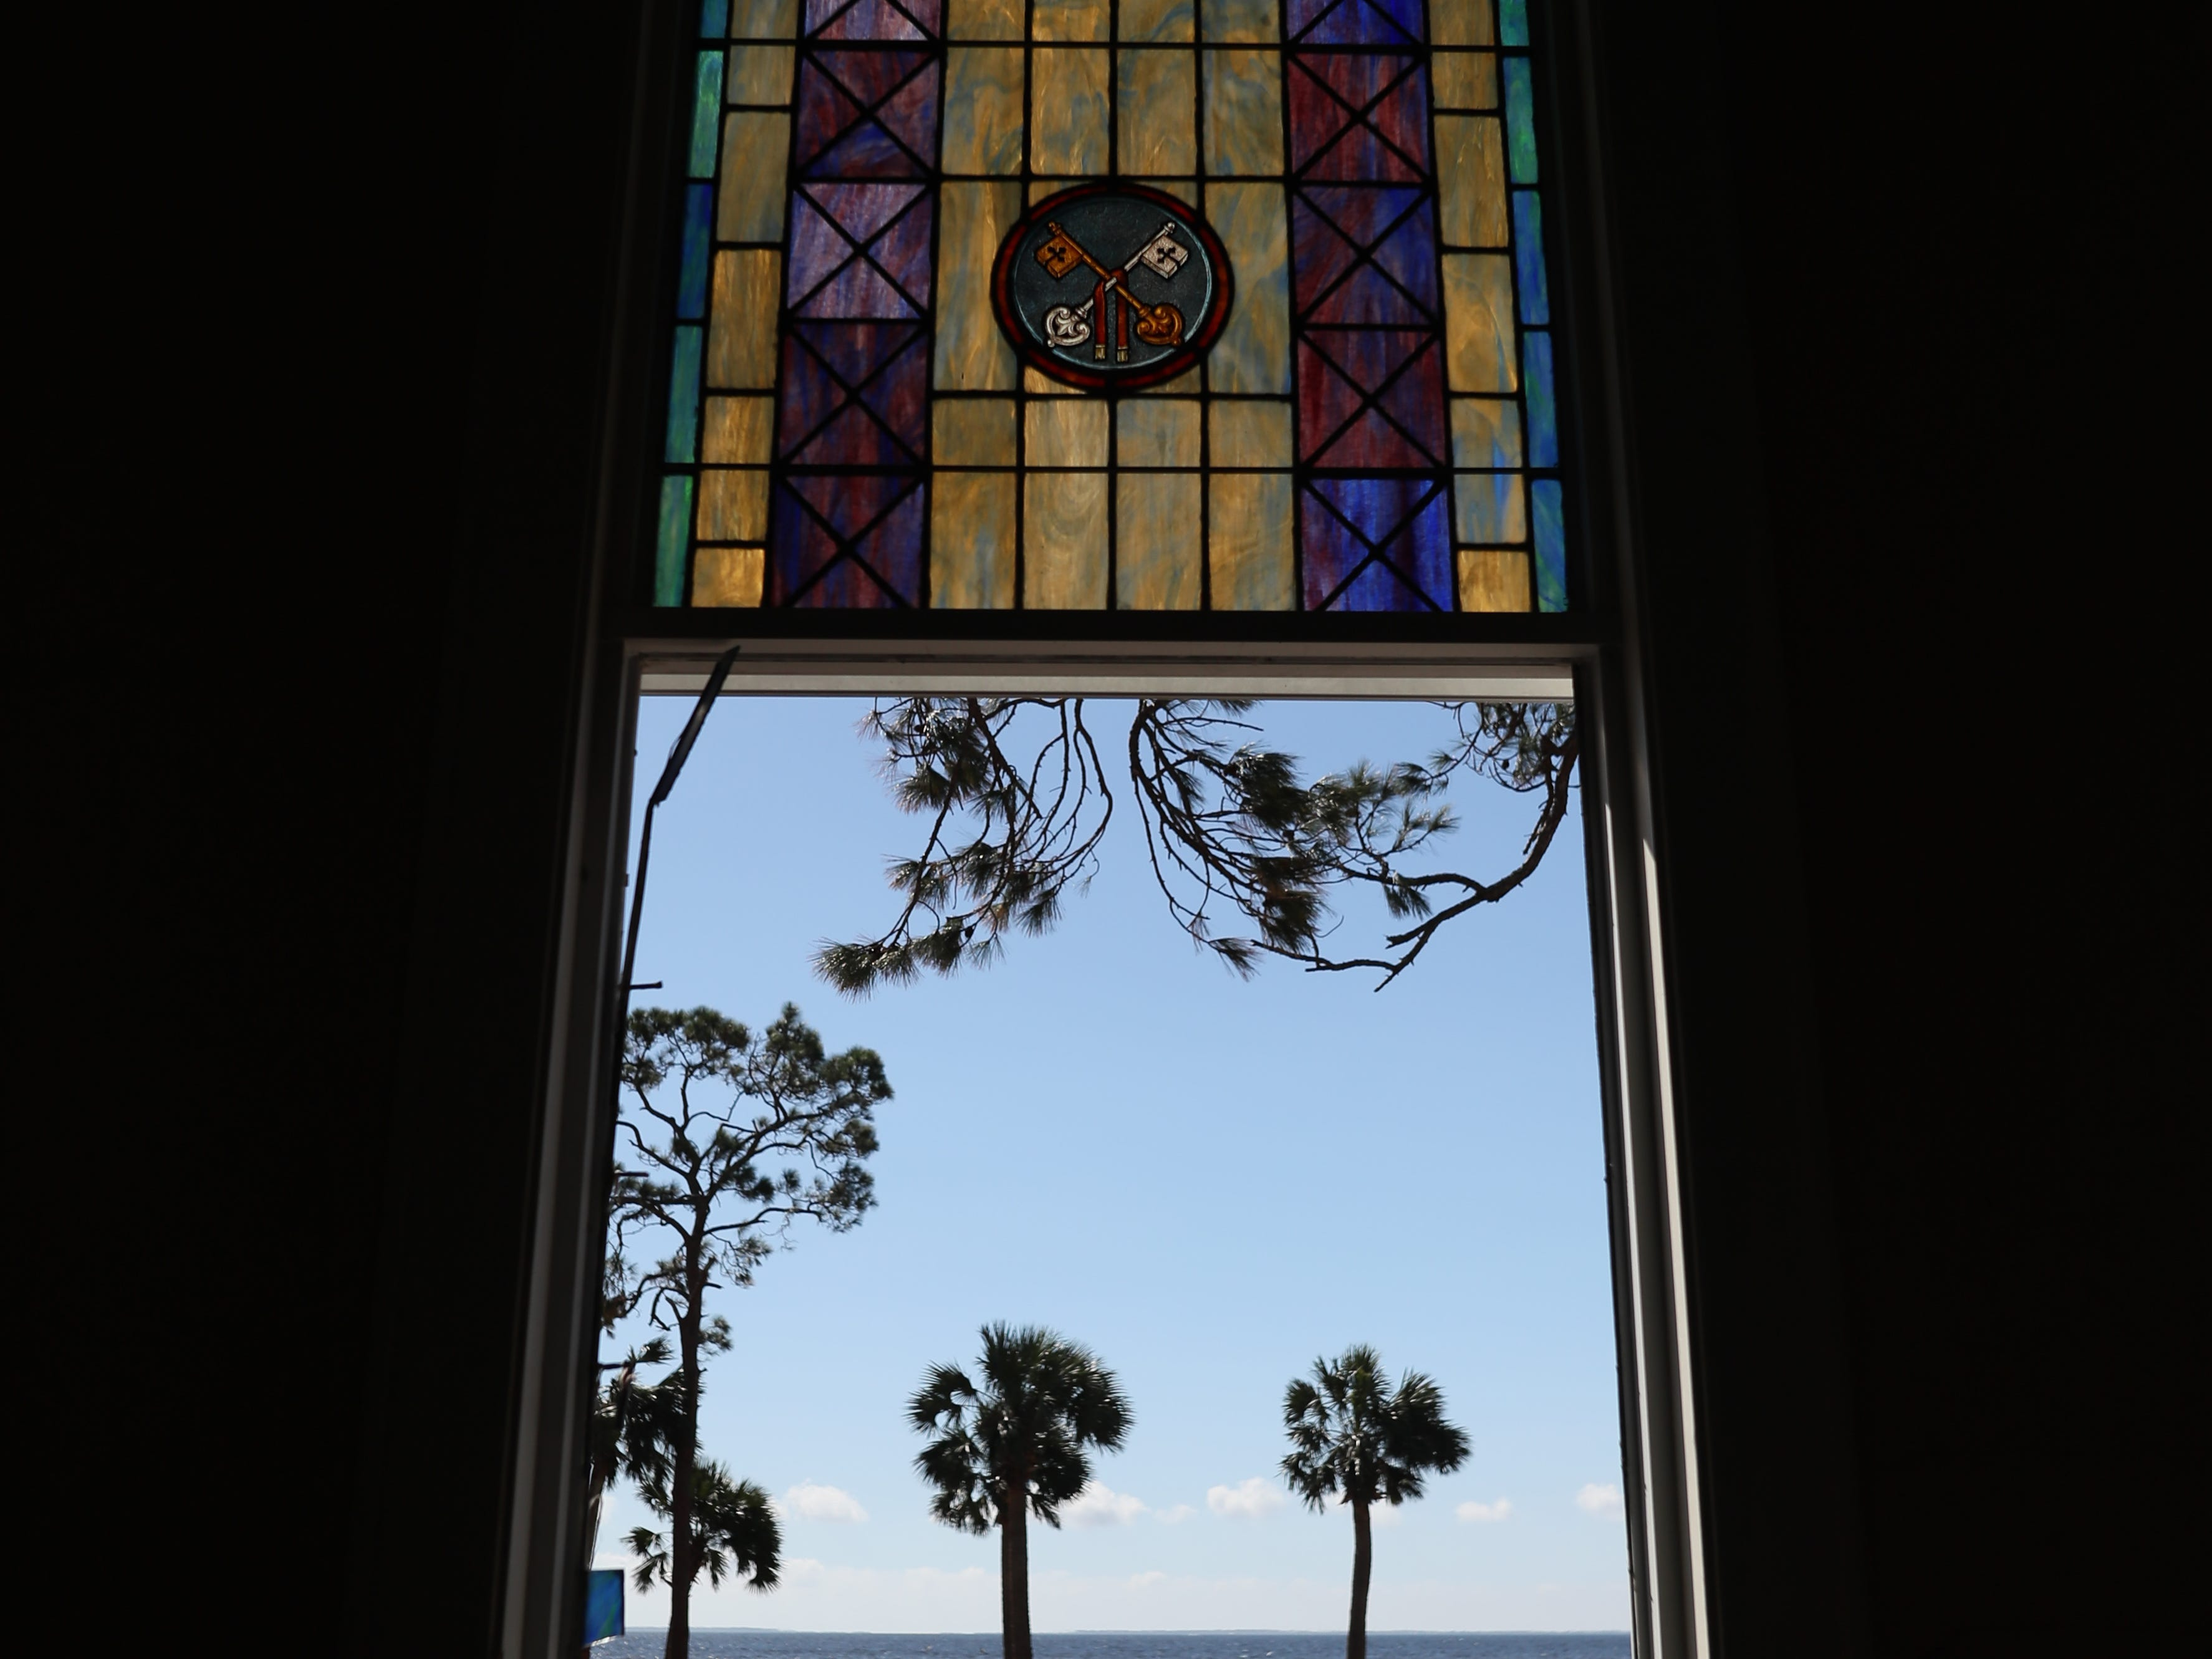 A scenic, coastal view of the Gulf of Mexico calmly beckons outside of the First United Methodist Church in Port St. Joe on Tuesday, Oct. 16, 2018. The church was battered by Hurricane Michael, leaving both the sanctuary and the pastor Geoffrey Lentz's house in shambles.